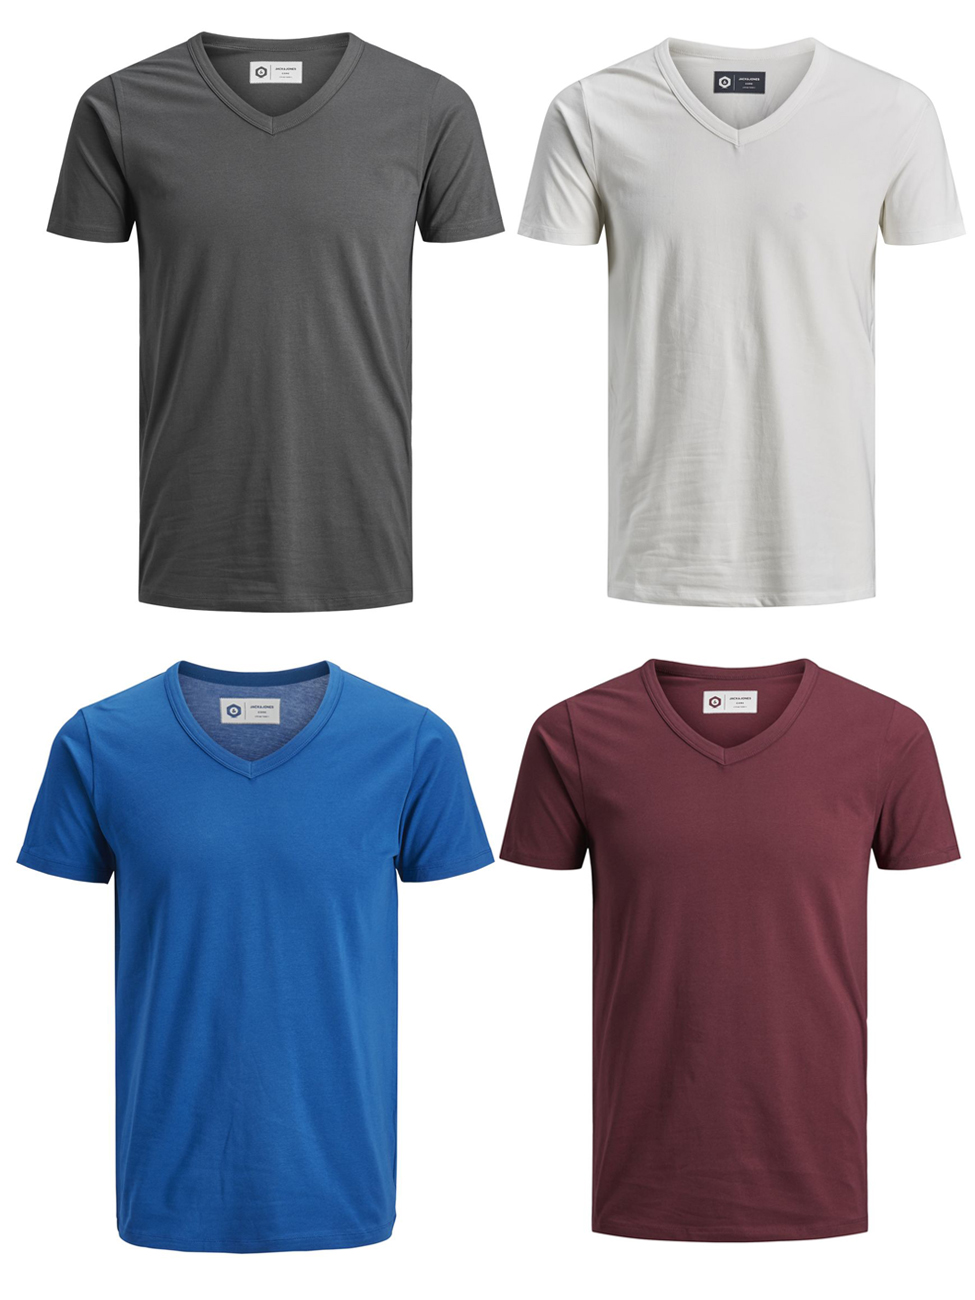 jack-jones-herren-t-shirt-4er-pack-jjebasal-v-ausschnitt-slim-fit-basic